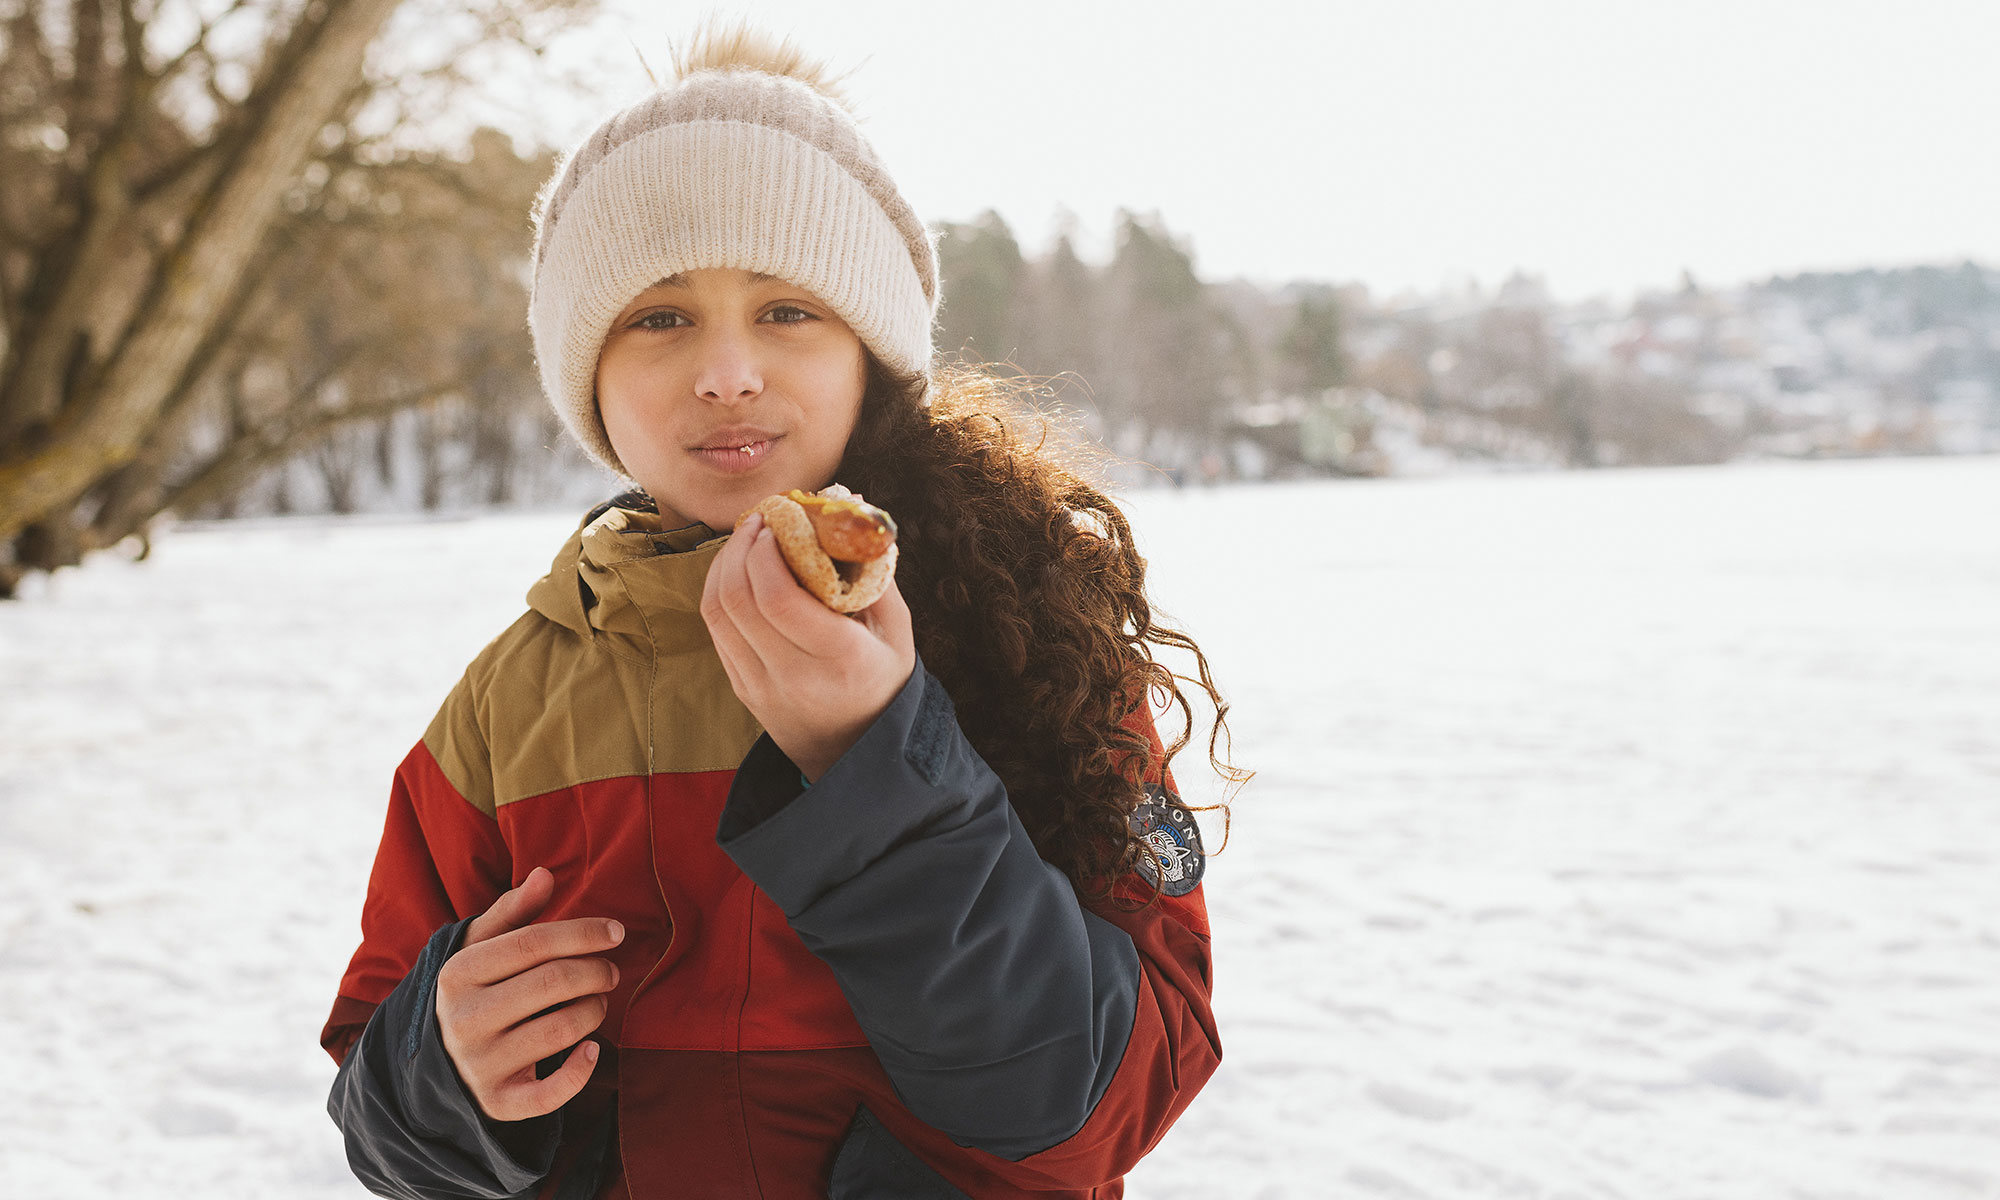 Wintertime - girl eating a hotdog outdoors